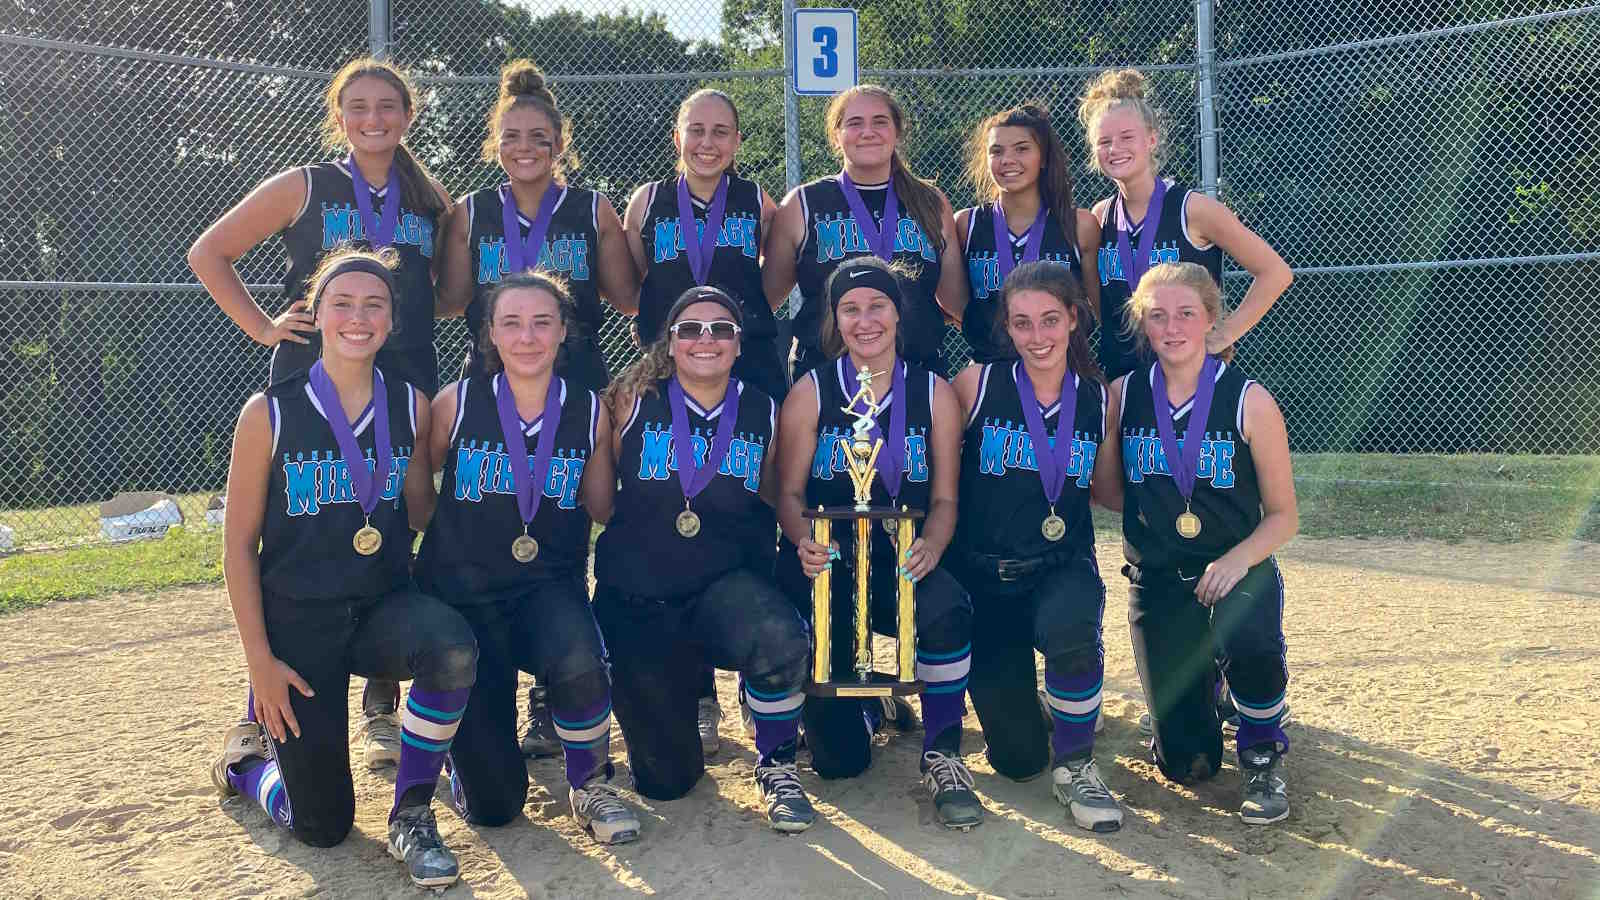 CT Mirage Travel Softball Annie Olender Tournament Champions July 2020